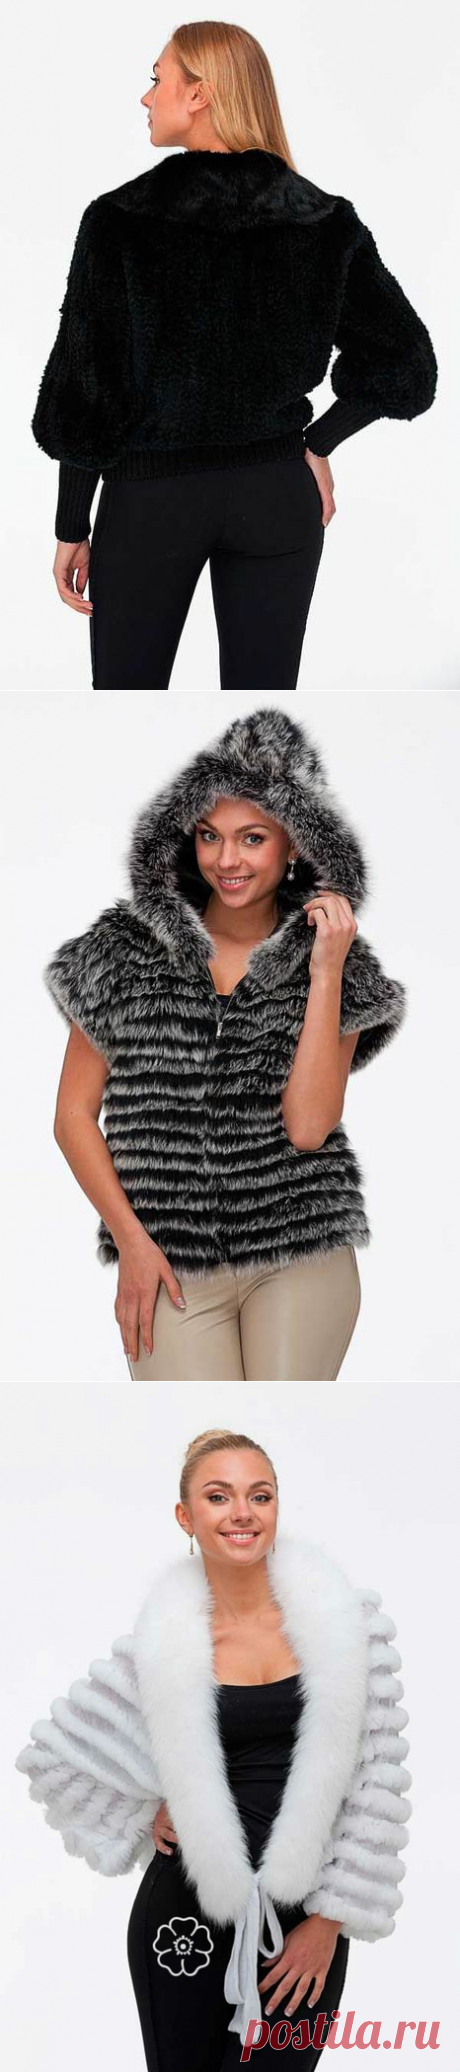 Knitting by fur | Records in the heading Knitting fur | vizar